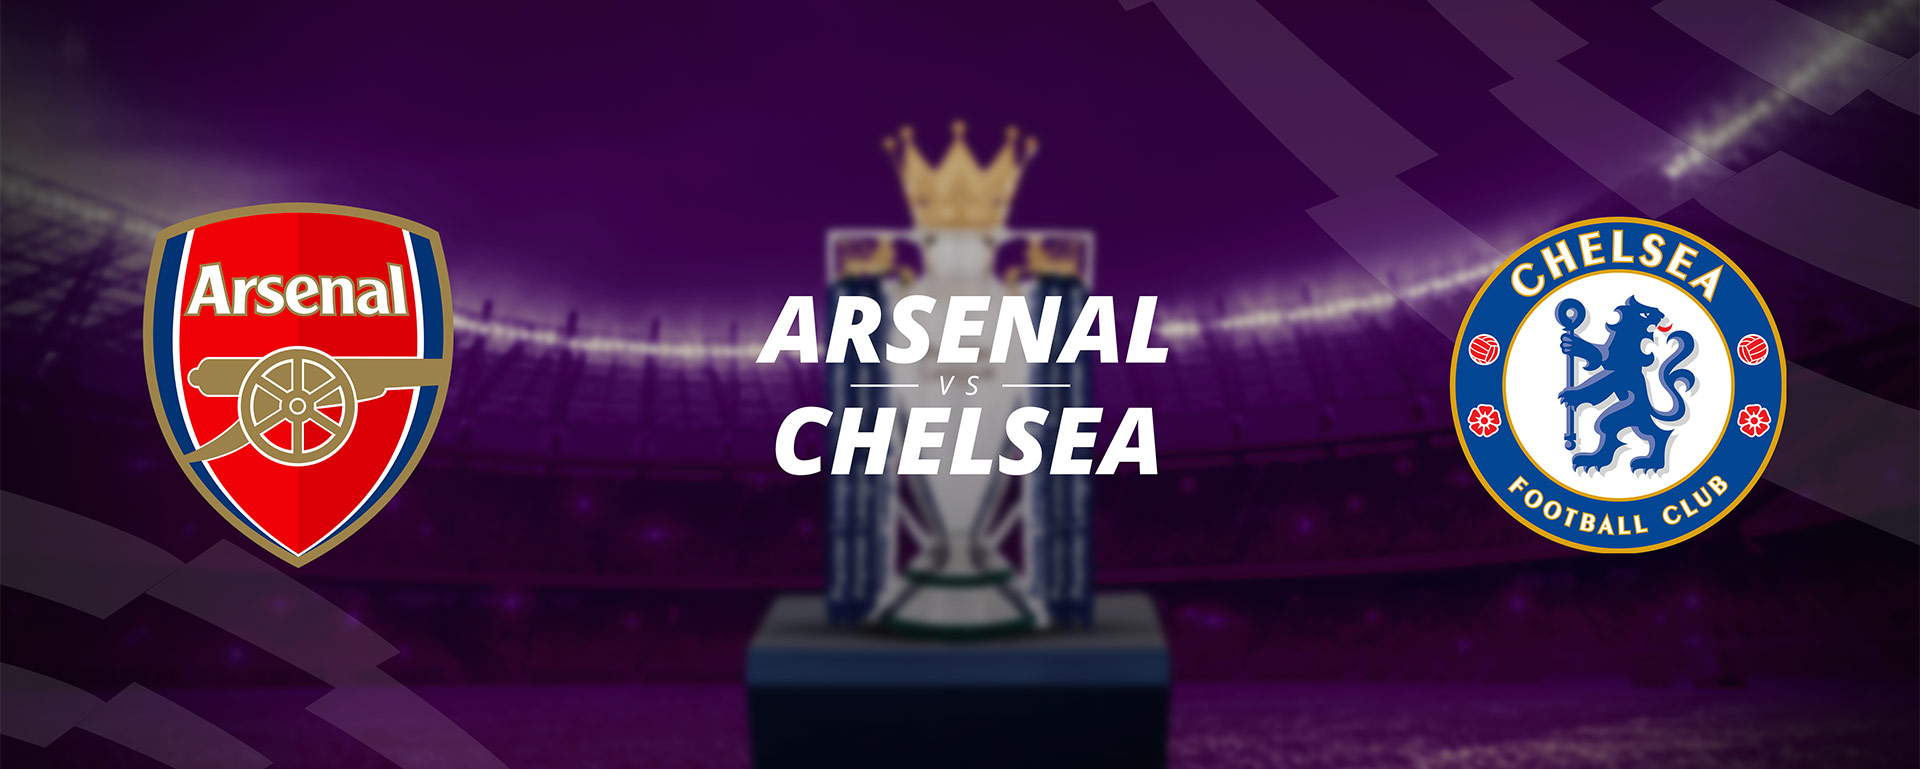 ARSENAL VS CHELSEA: BETTING PREVIEW